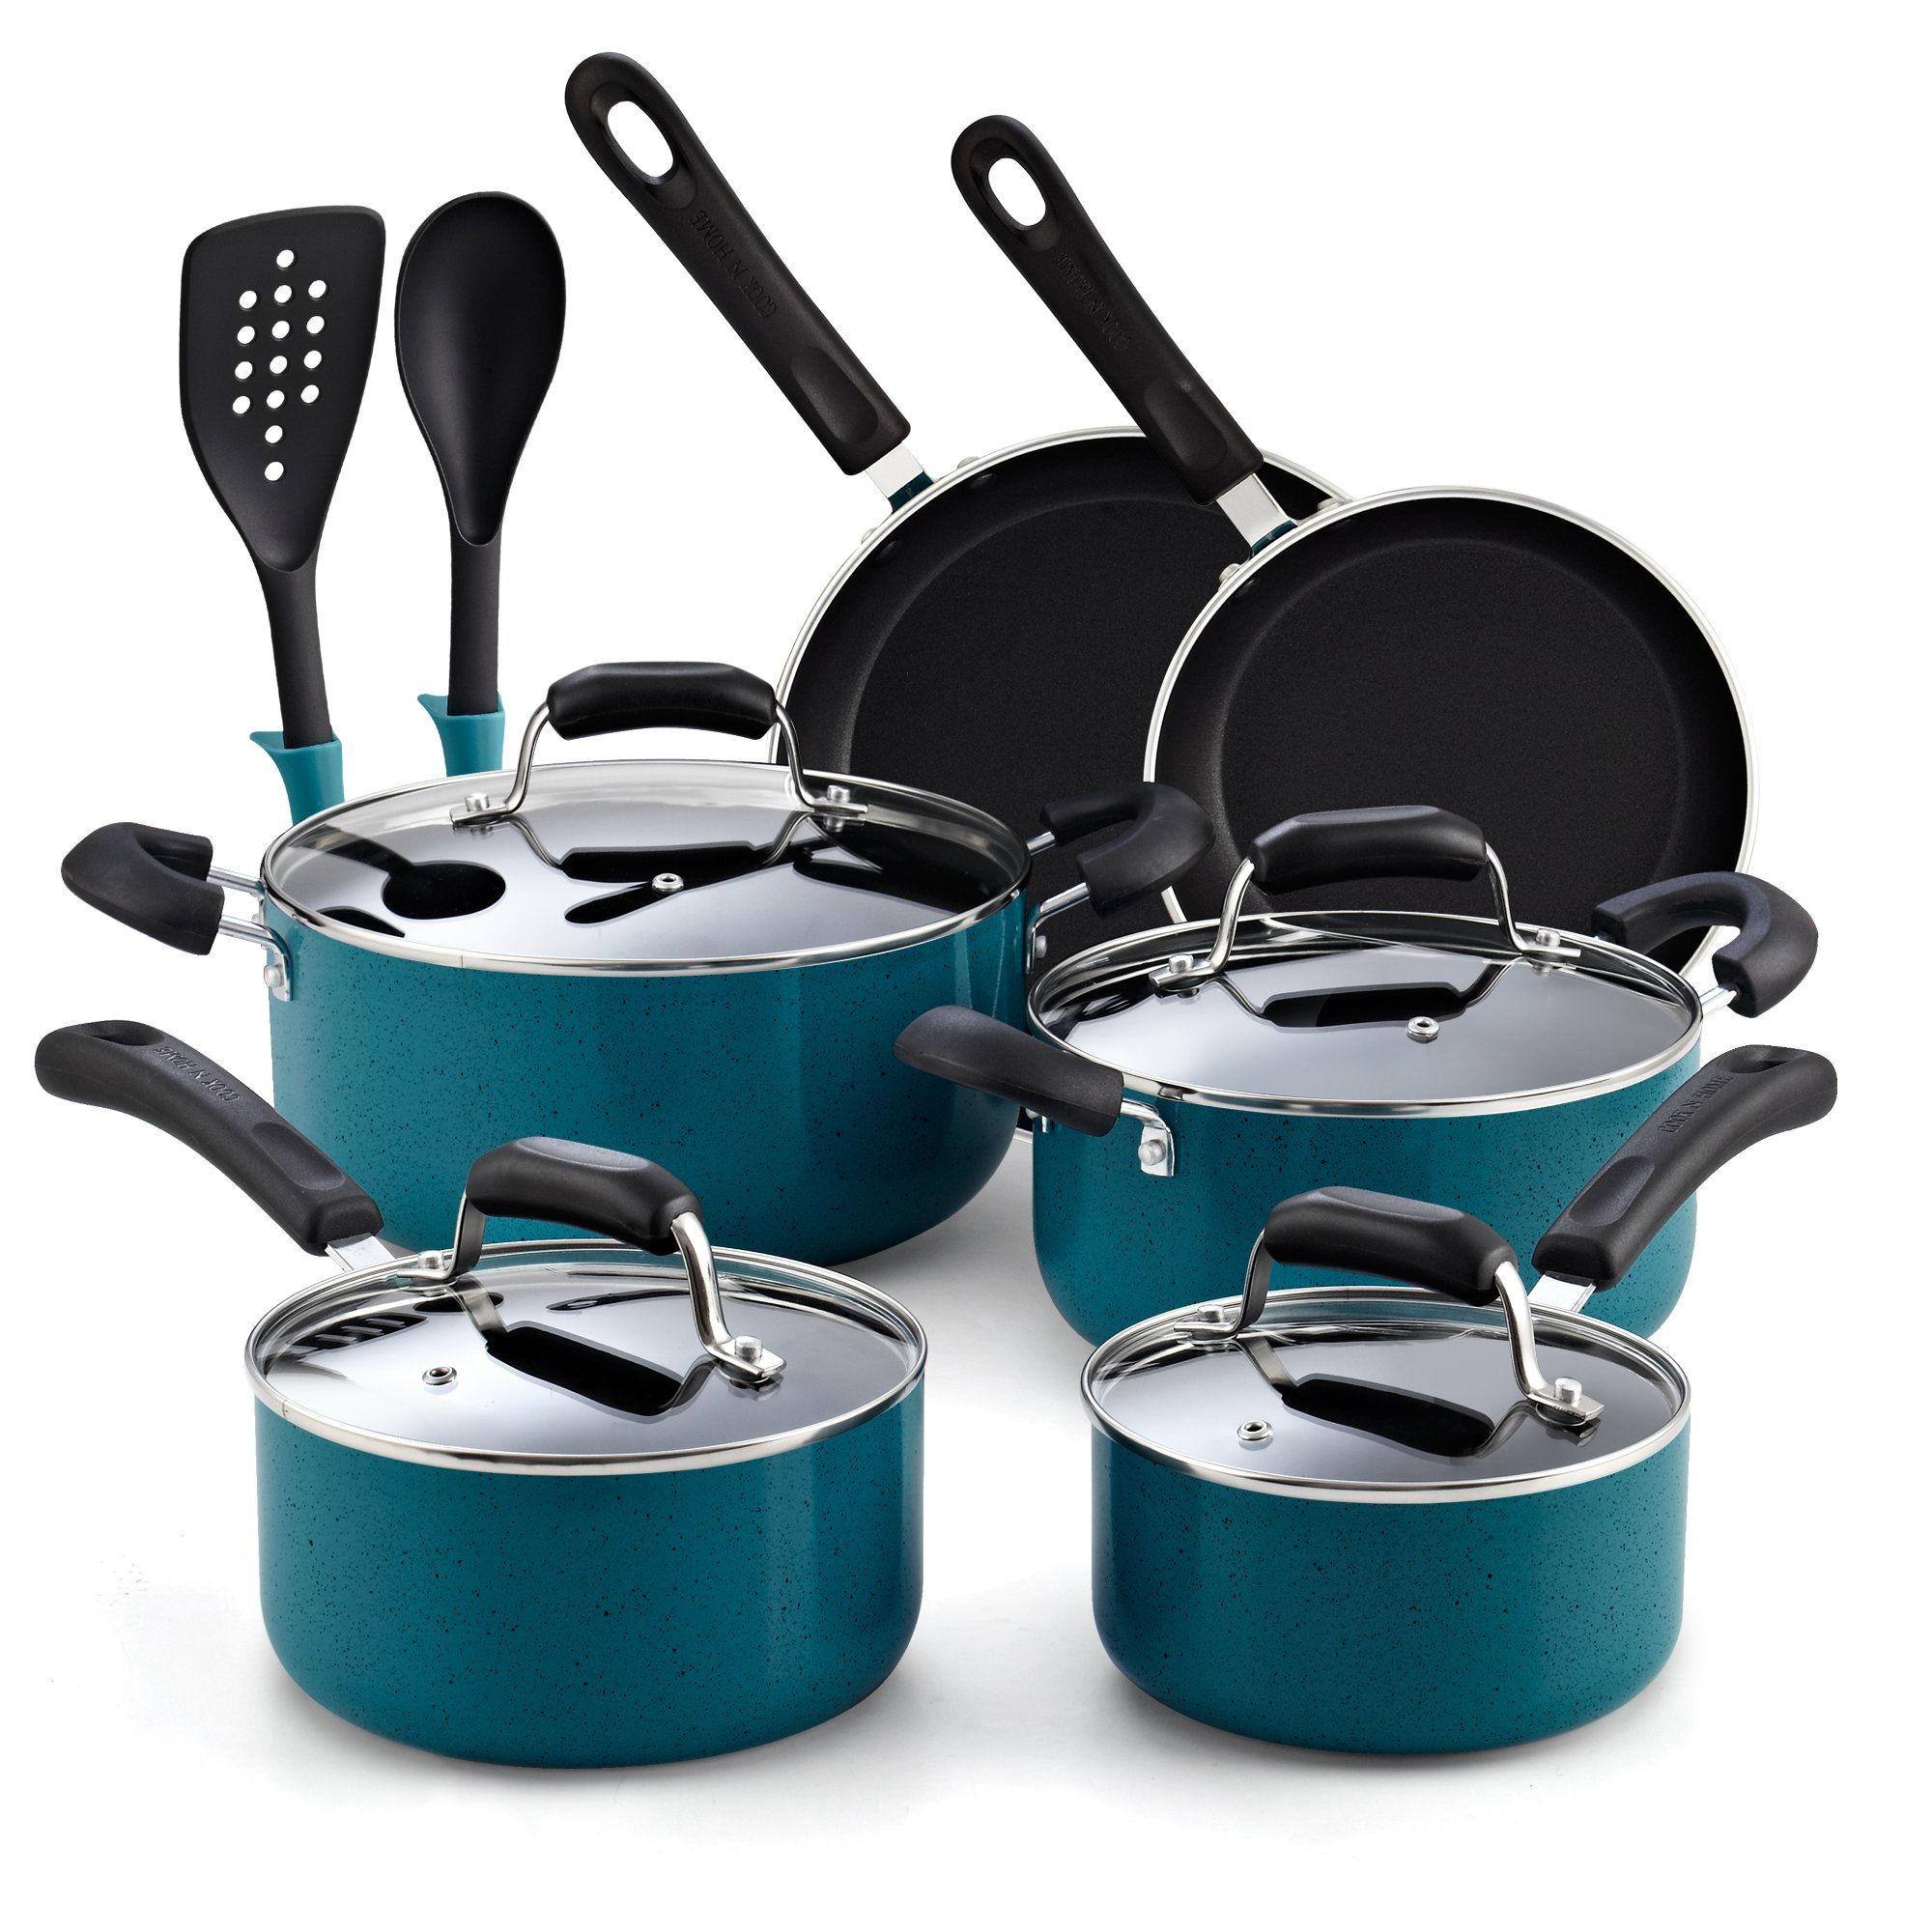 Cook N Home 02588 Nonstick Stay Cool Handle Cookware Set, 12-Piece, Turquoise